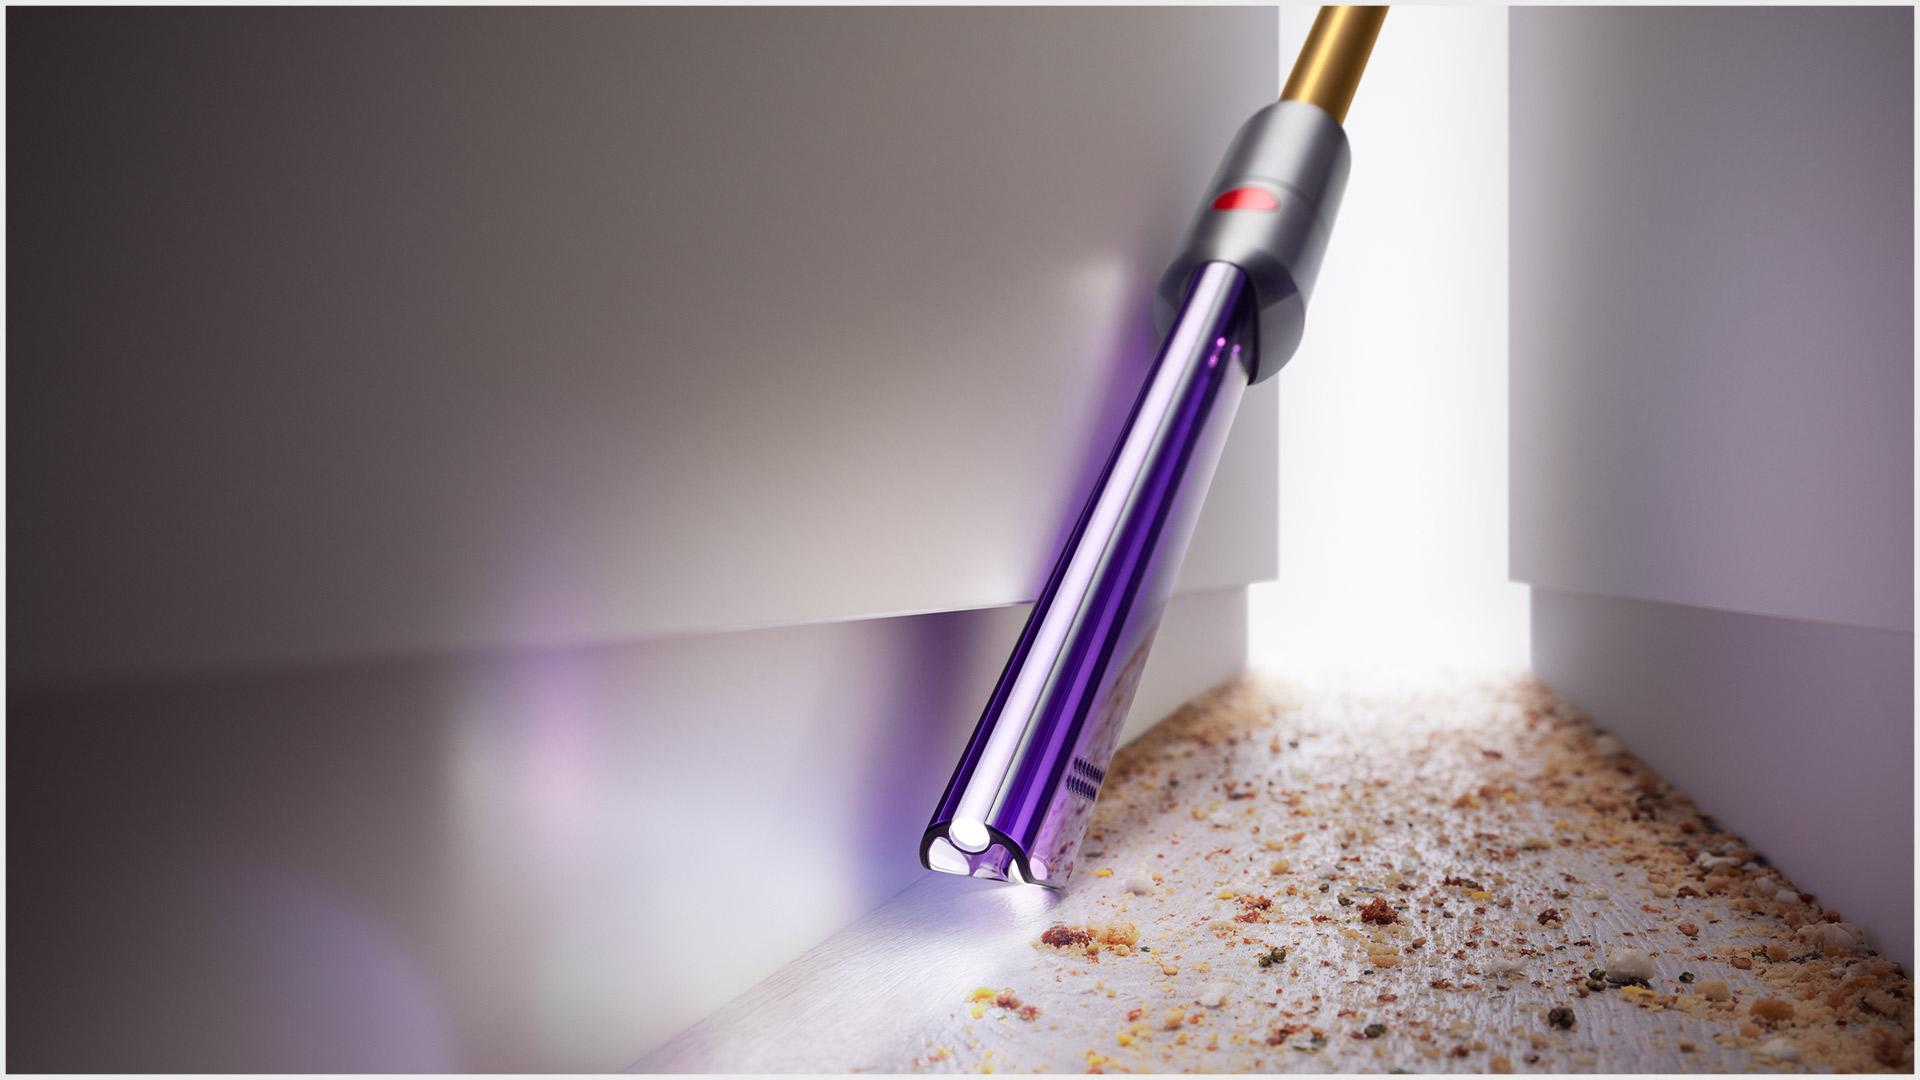 Dyson Light pipe crevice tool